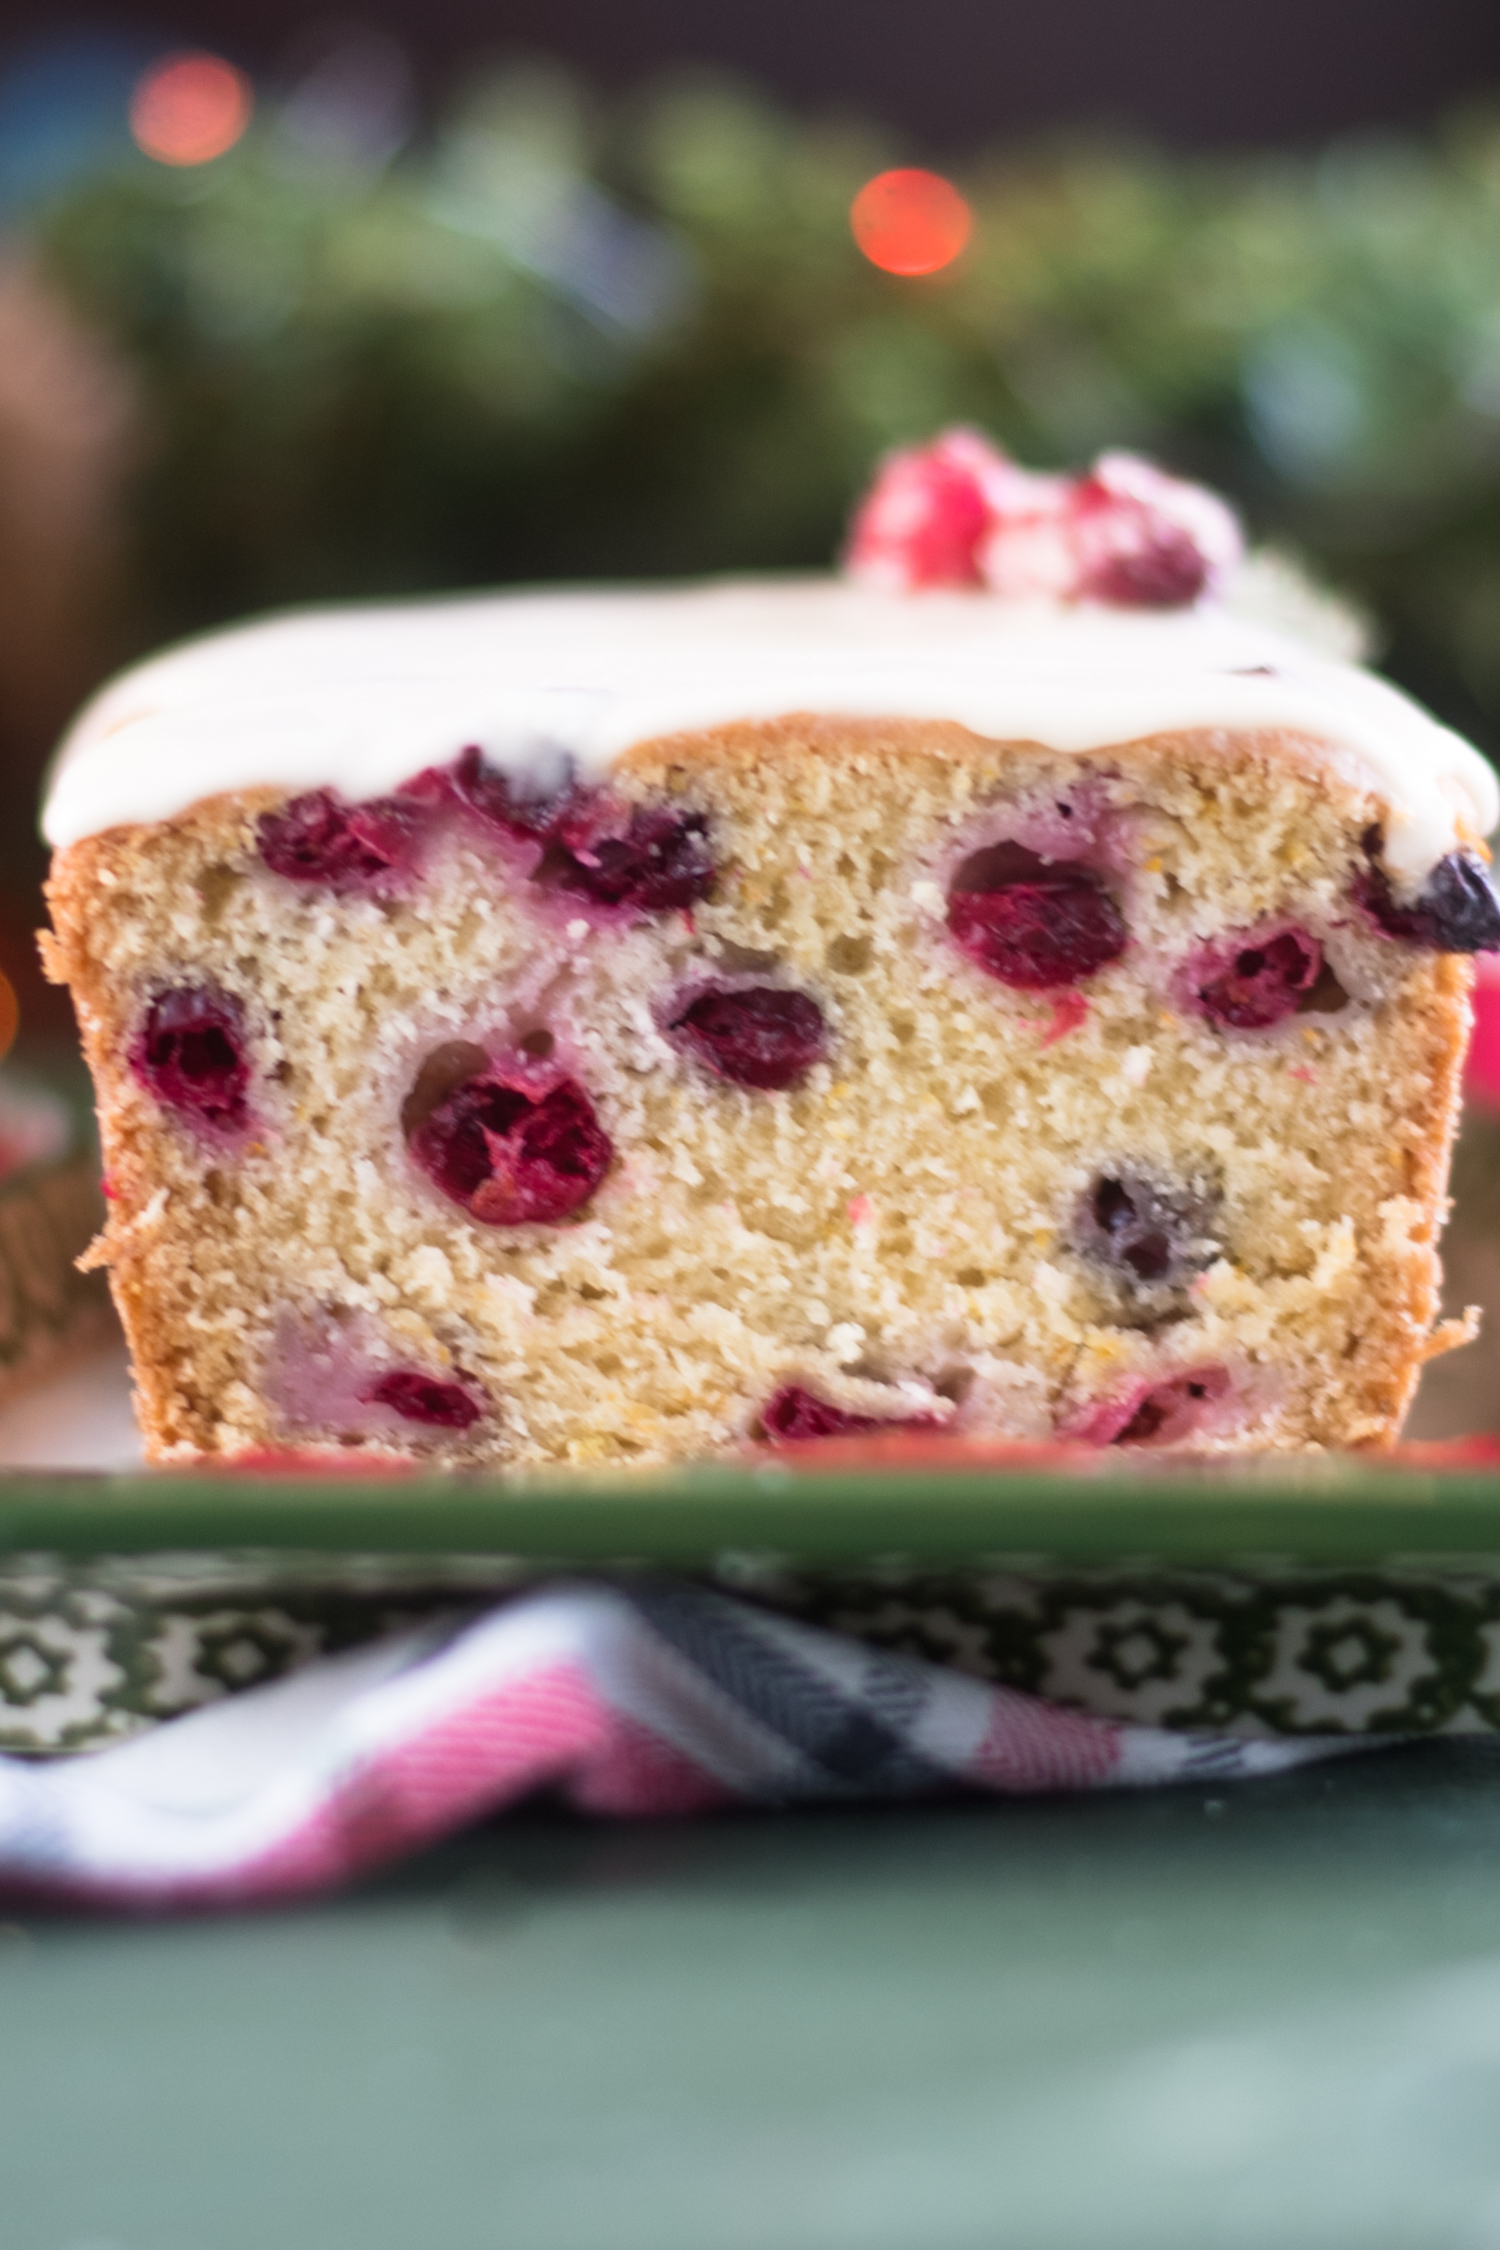 This Vegan Cranberry Orange Pound Cake would be perfect for serving on Christmas! Your family will just love this pound cake. #vegan #Christmas #dessert #recipes